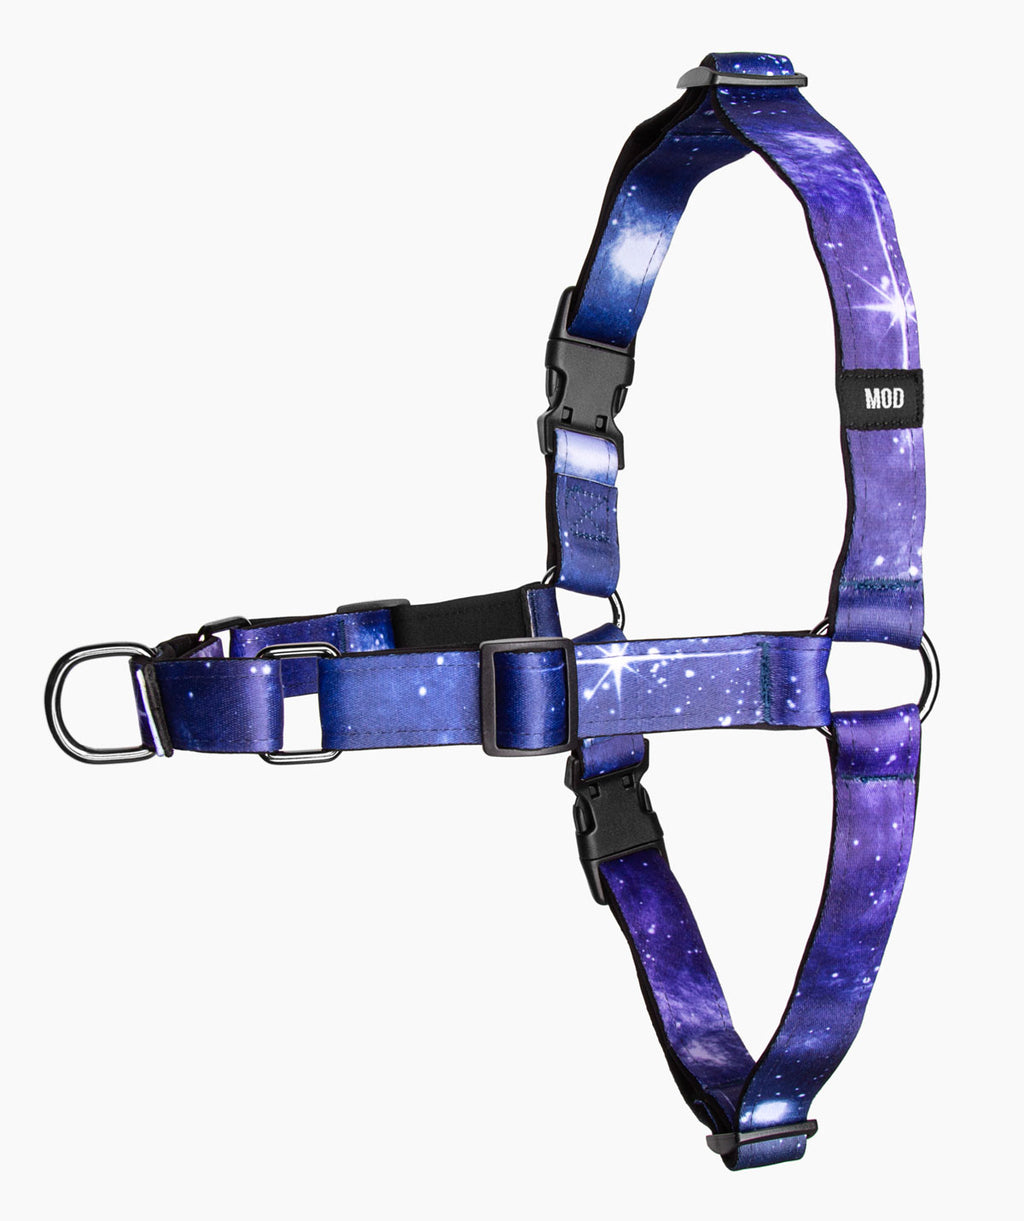 Galaxy Quest No-Pull Harness - MODLEASH